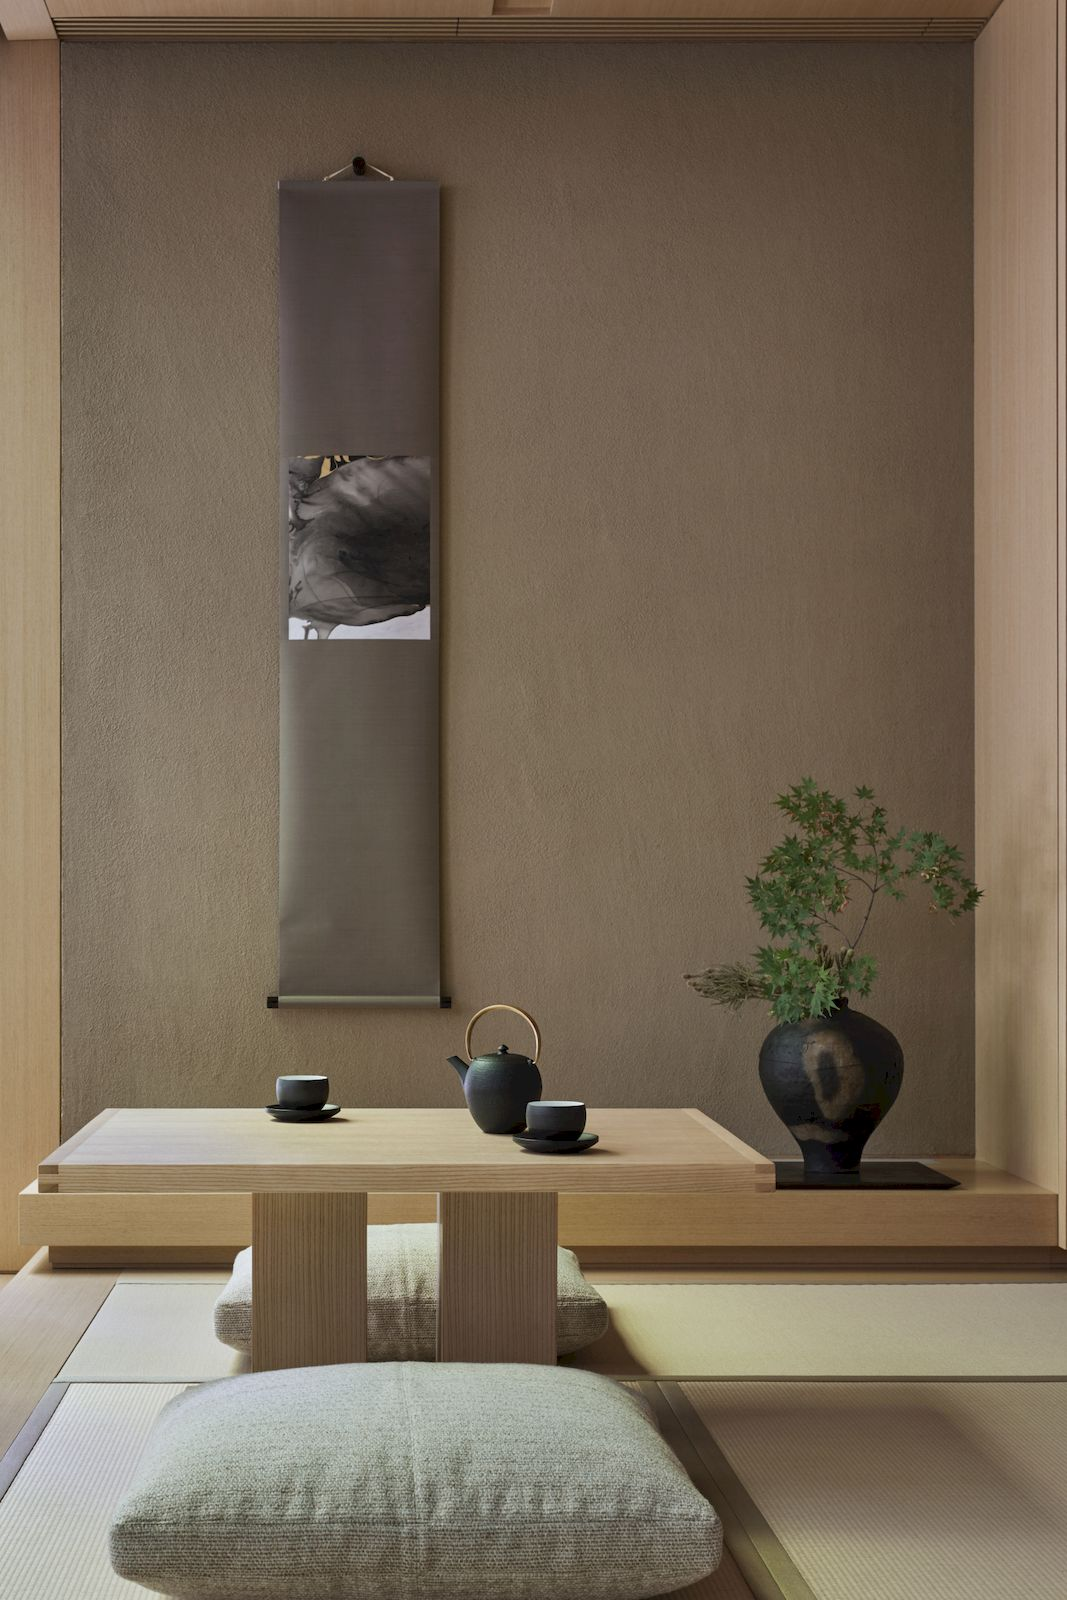 Newly opened Aman Kyoto is located in a secret garden that floods the senses and the spirit with nature's goodness